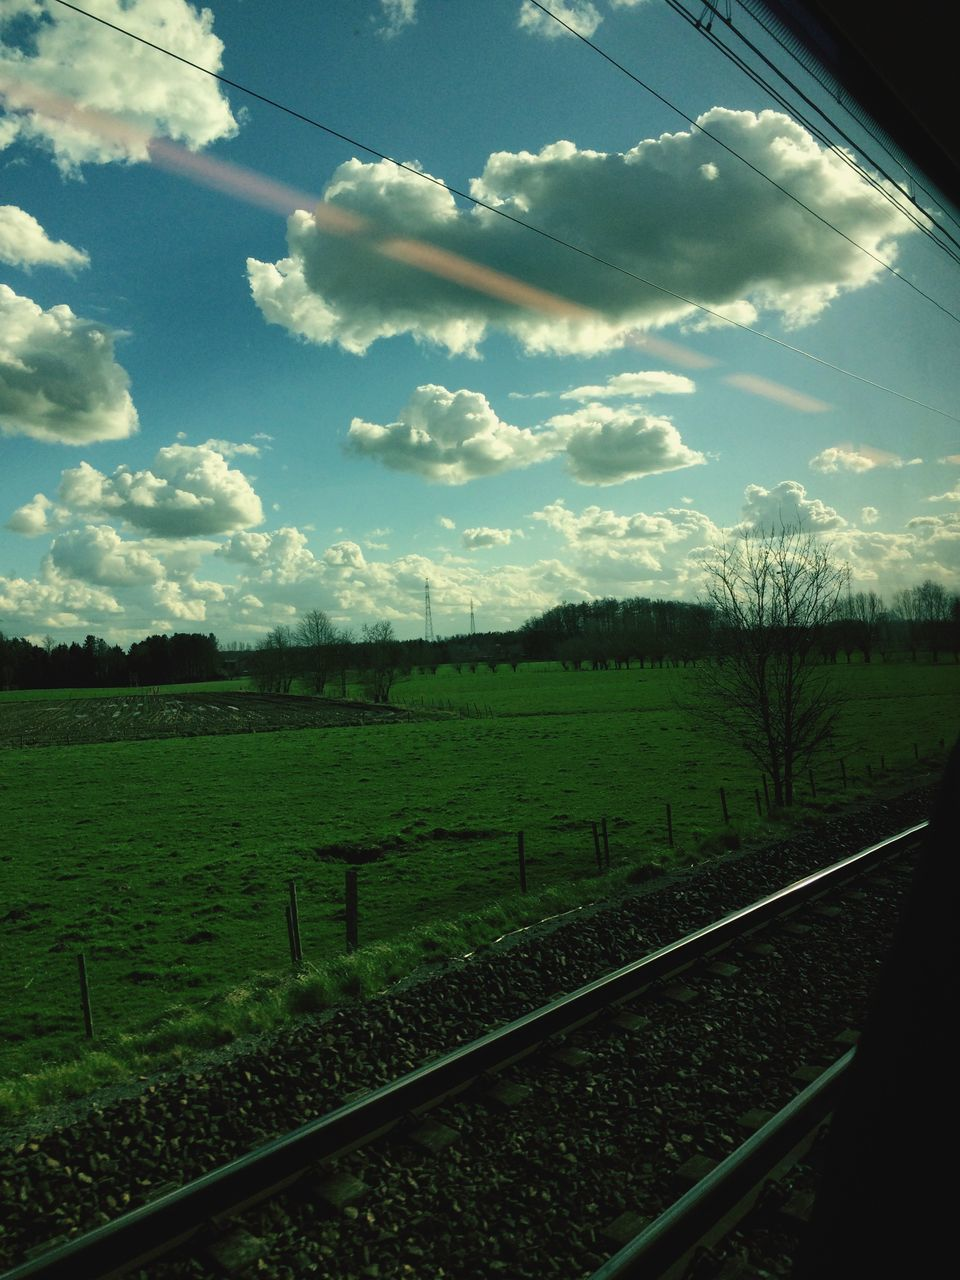 View Of Green Landscape Against Cloudy Sky Seen From Train Window